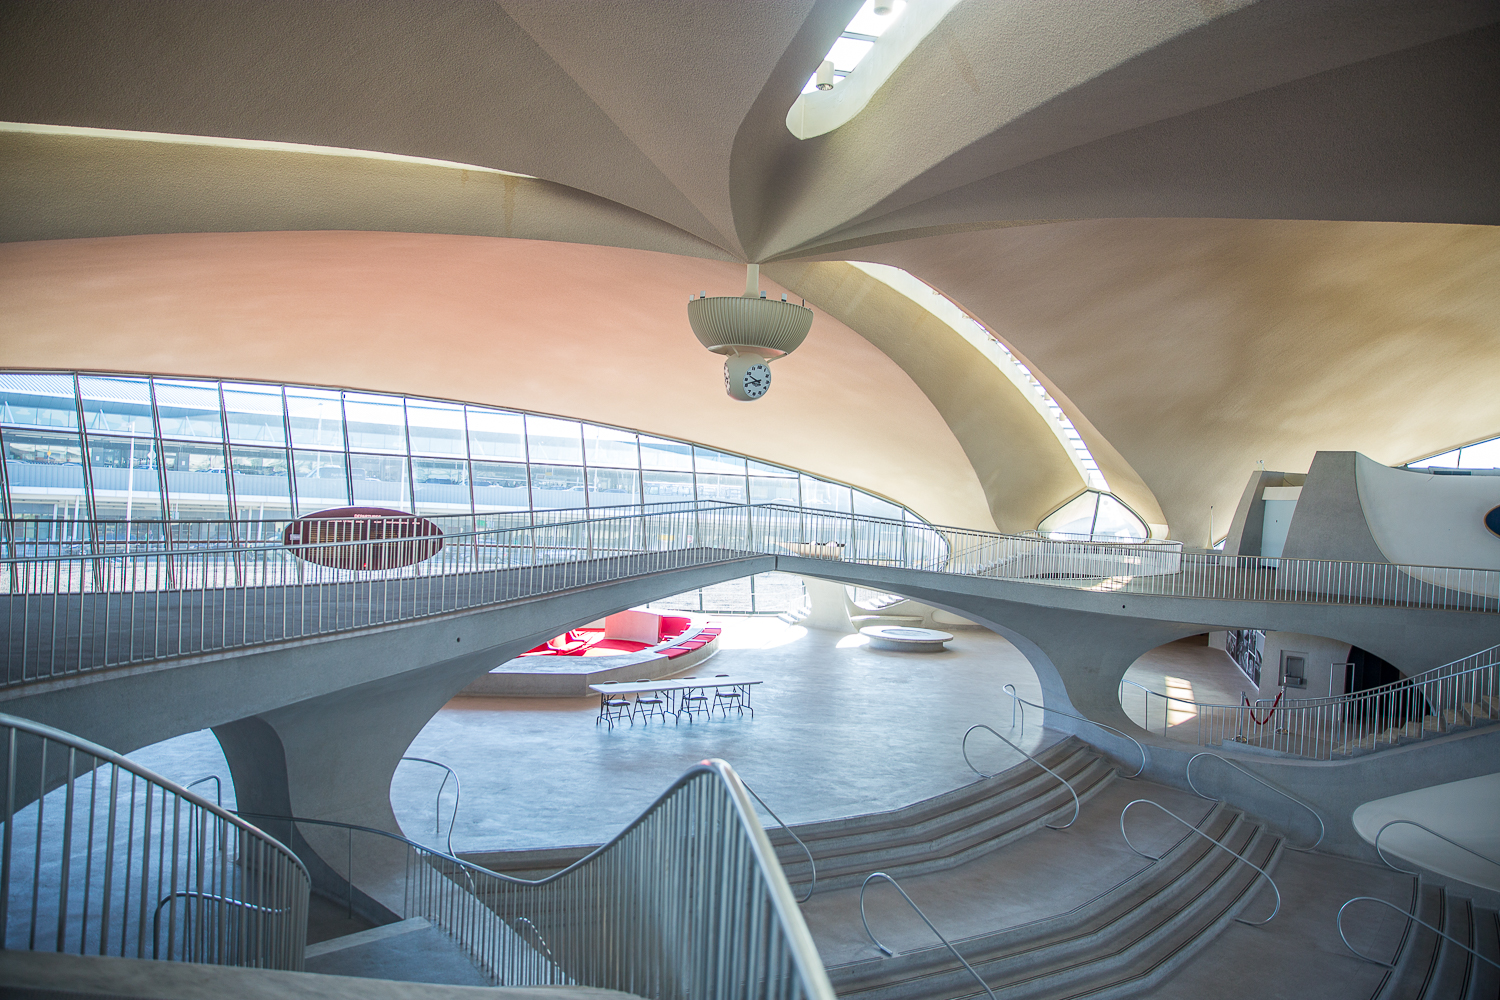 TWA-flight-center-jfk-photography-3.jpg